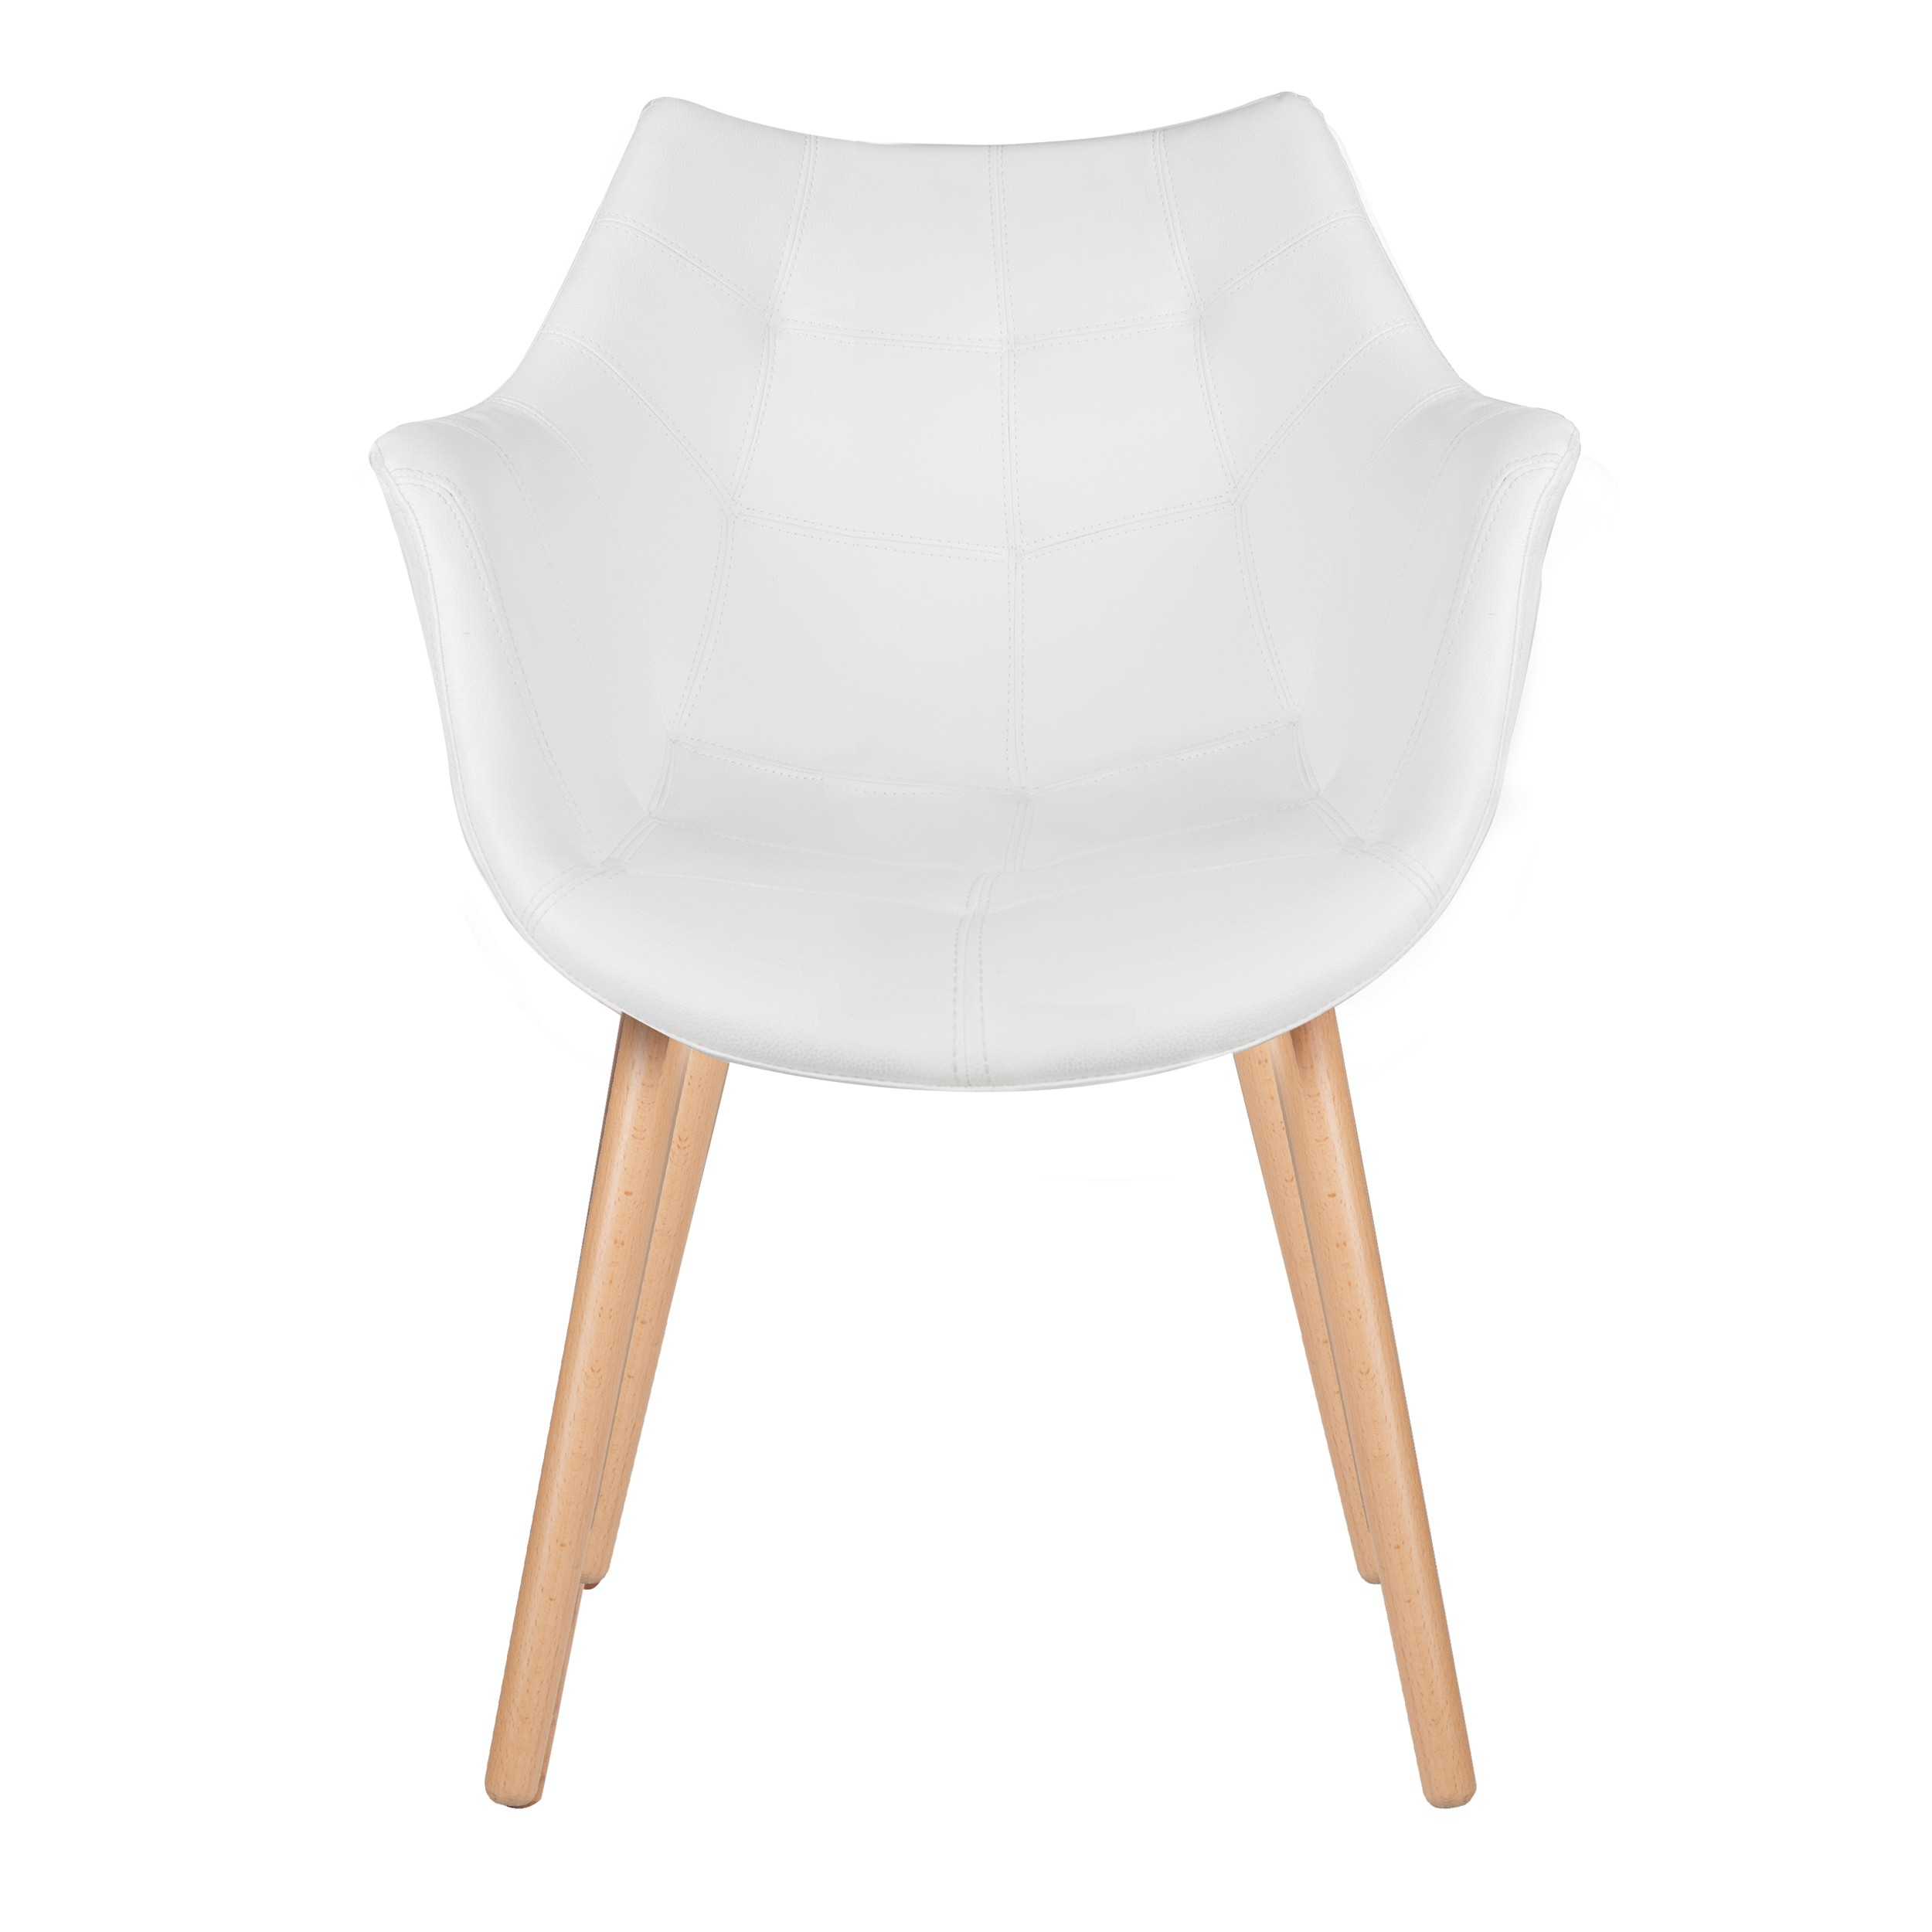 Chaise blanche beau chaise blanche alinea with chaise for Acheter chaise design